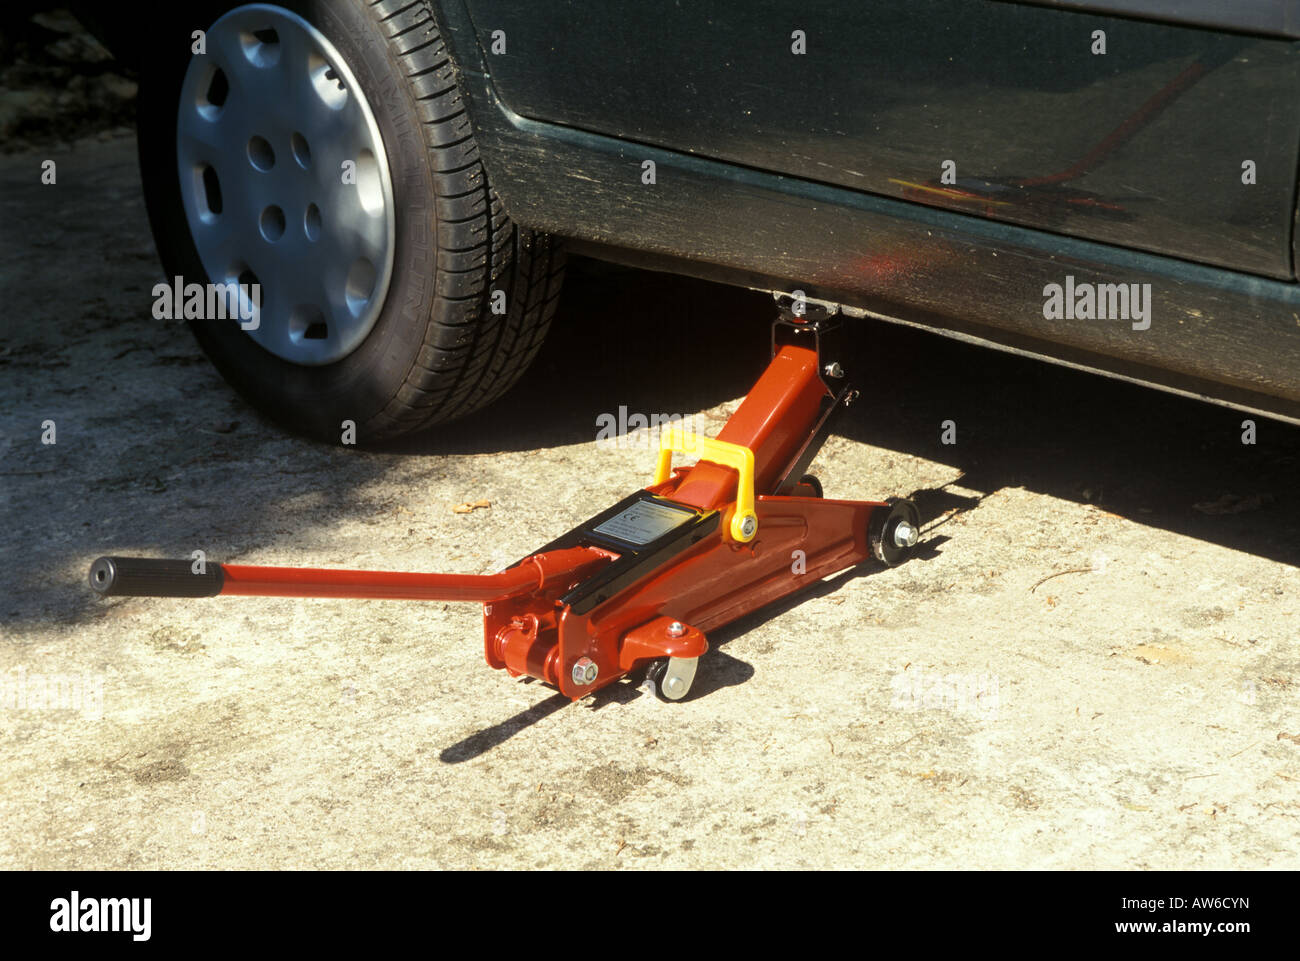 A motorist hydraulic car jack being used to raise a car - Stock Image